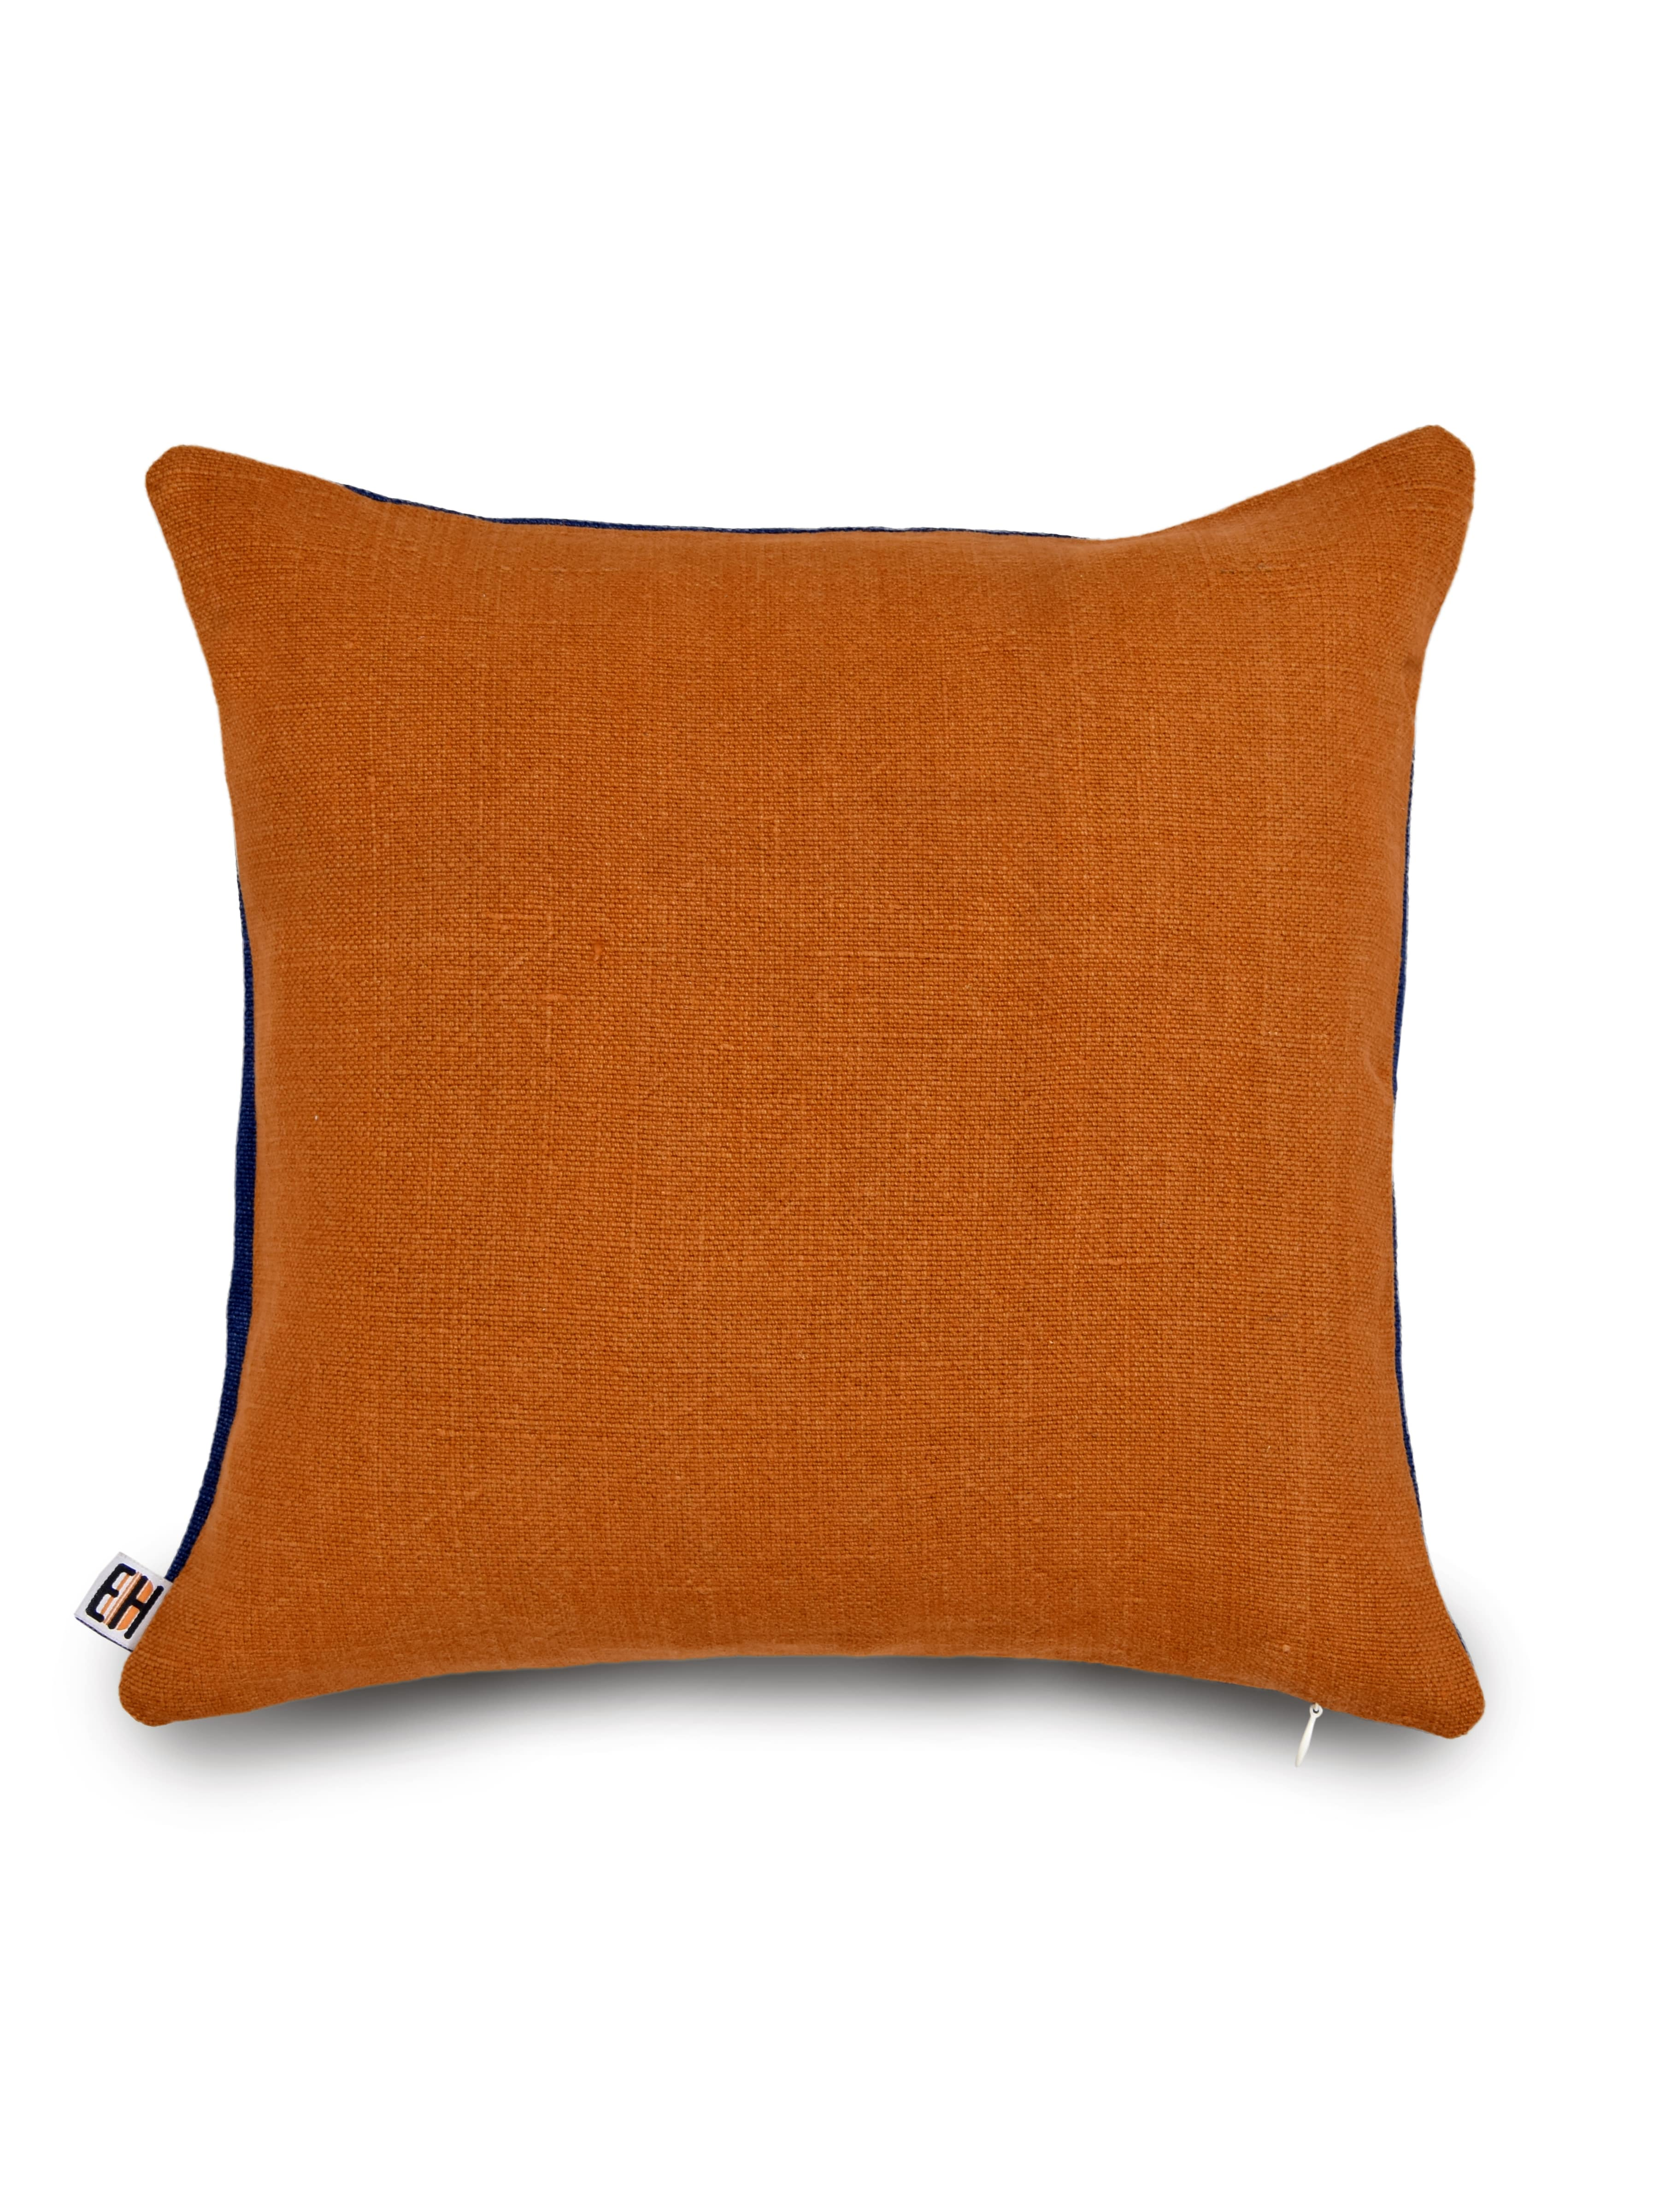 Blue and Orange Hemp Floral Hand Embroidered Cushion Cover